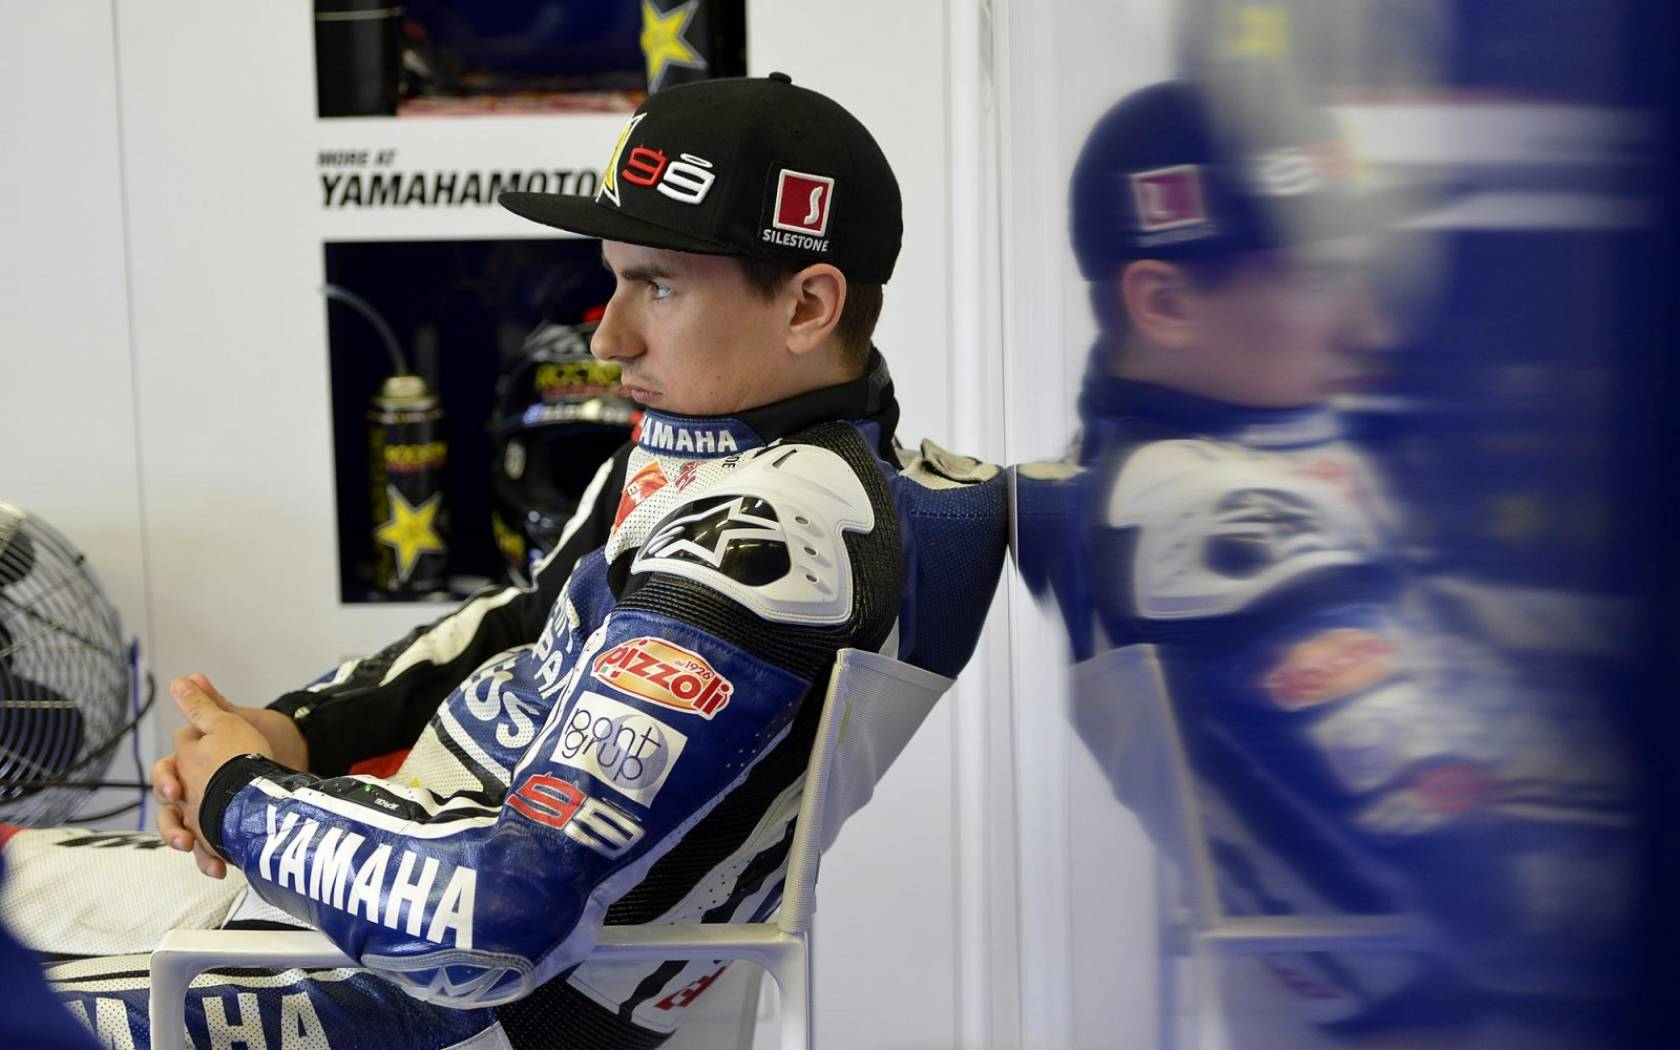 Lorenzo en el box HD